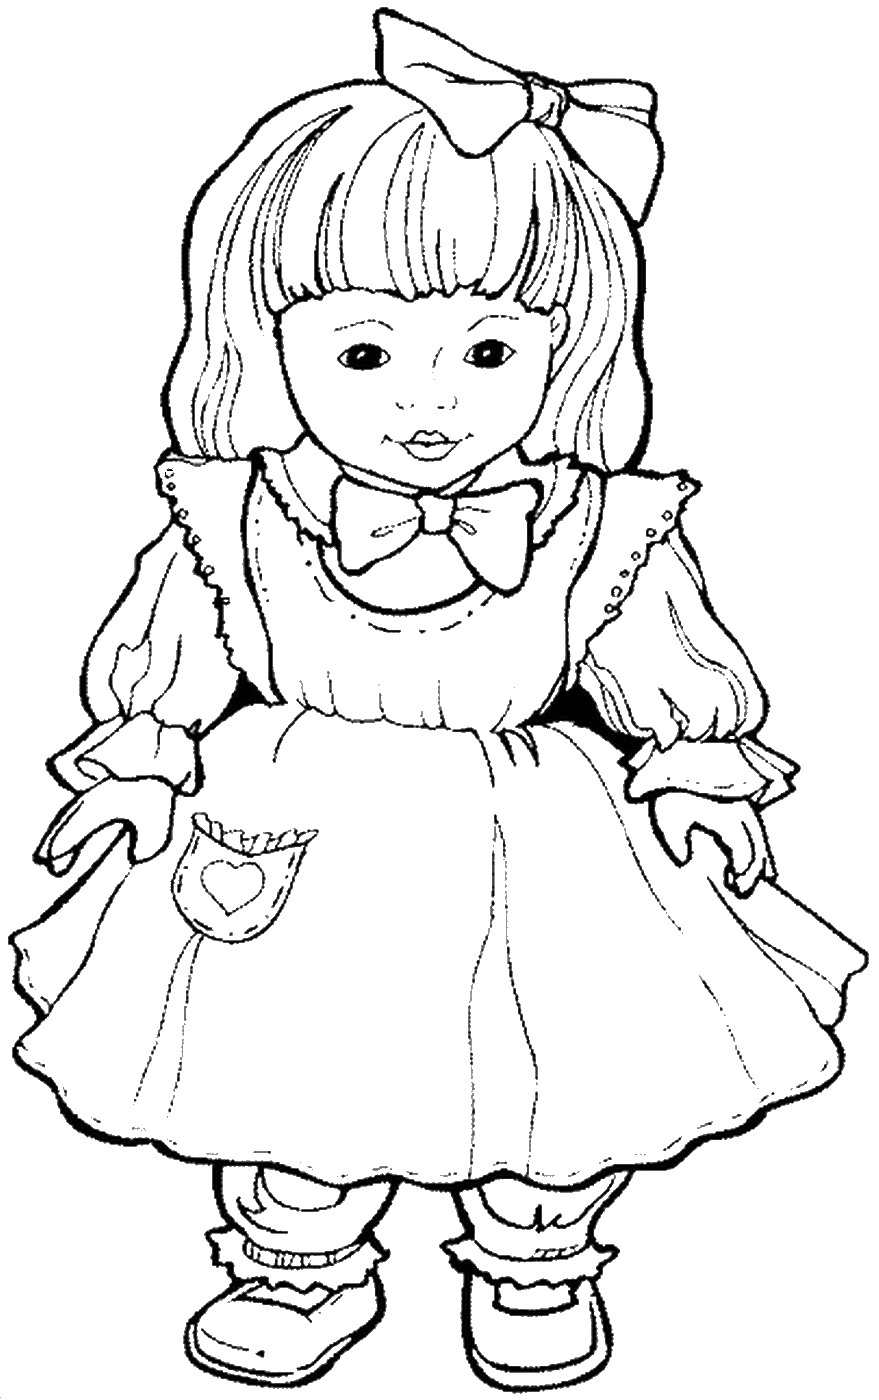 doll coloring page free printable baby doll coloring pages coloring home coloring page doll